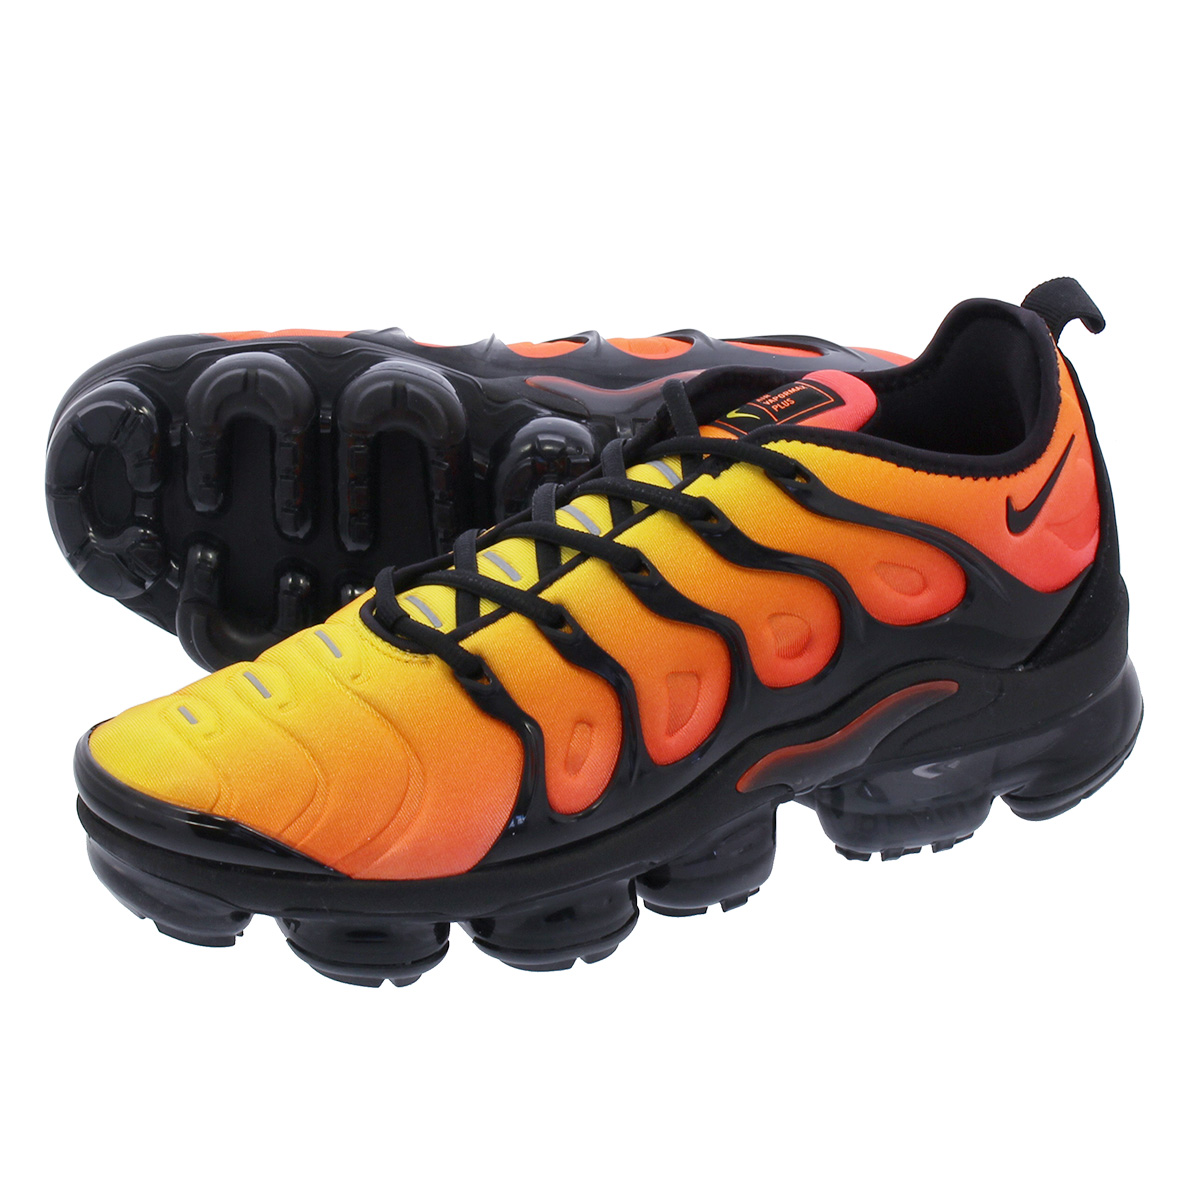 bbcd7a10e909e NIKE AIR VAPORMAX PLUS Nike vapor max plus TOTAL ORANGE BLACK TOTAL CRIMSON SUNSET  924